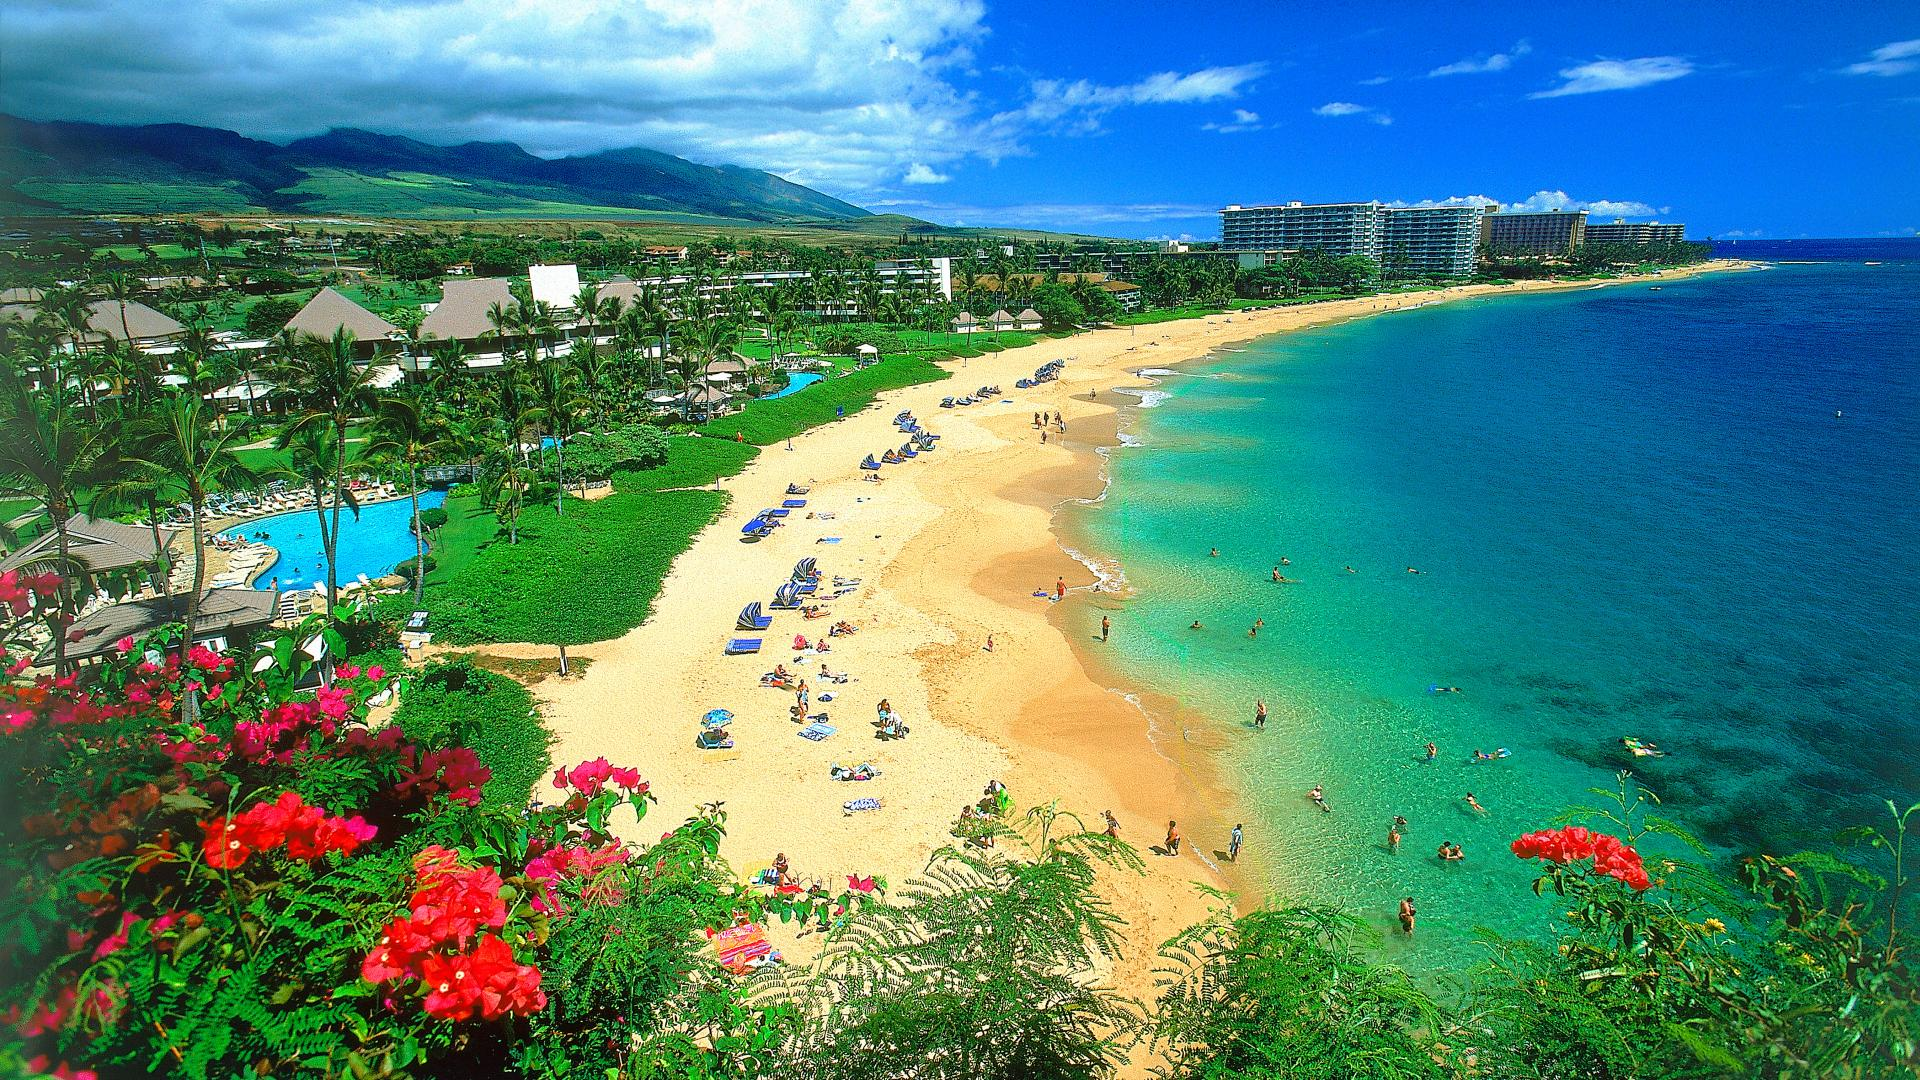 Beach Desktop Backgrounds and Wallpaper   Kaanapali Beach Maui 1920x1080